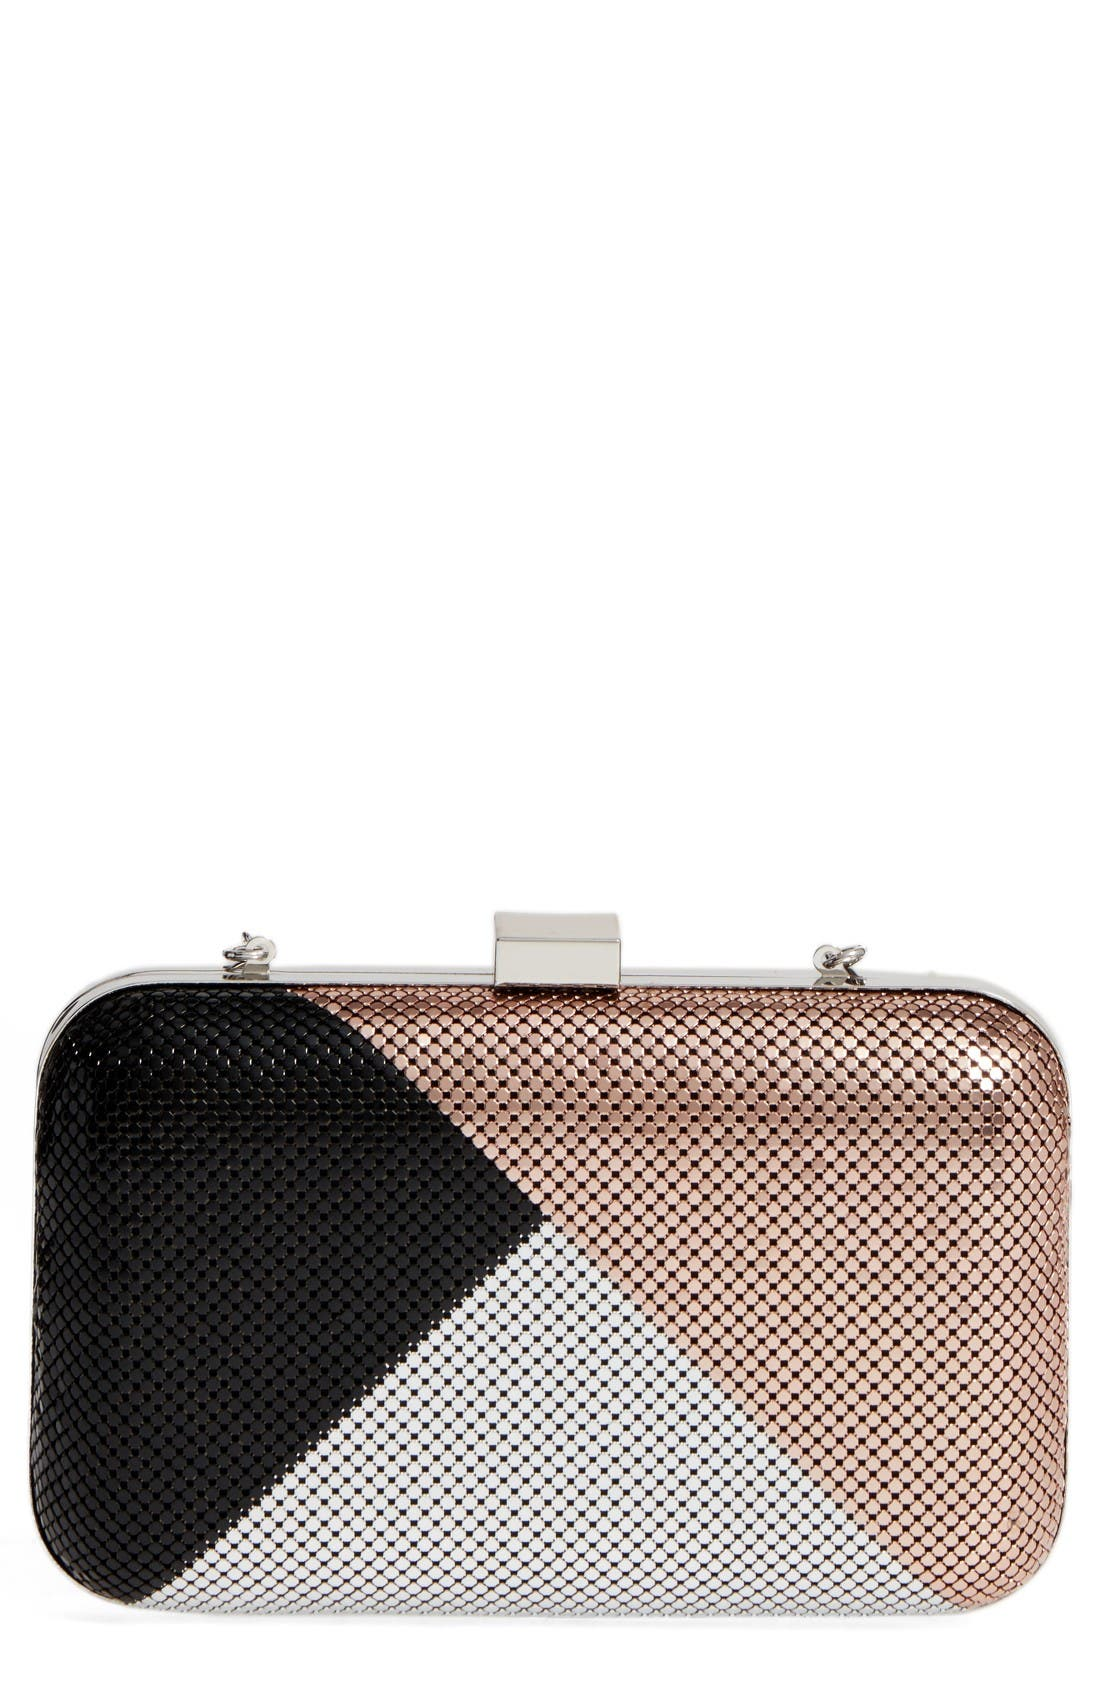 Main Image - Whiting & Davis Color Block Mesh Box Clutch